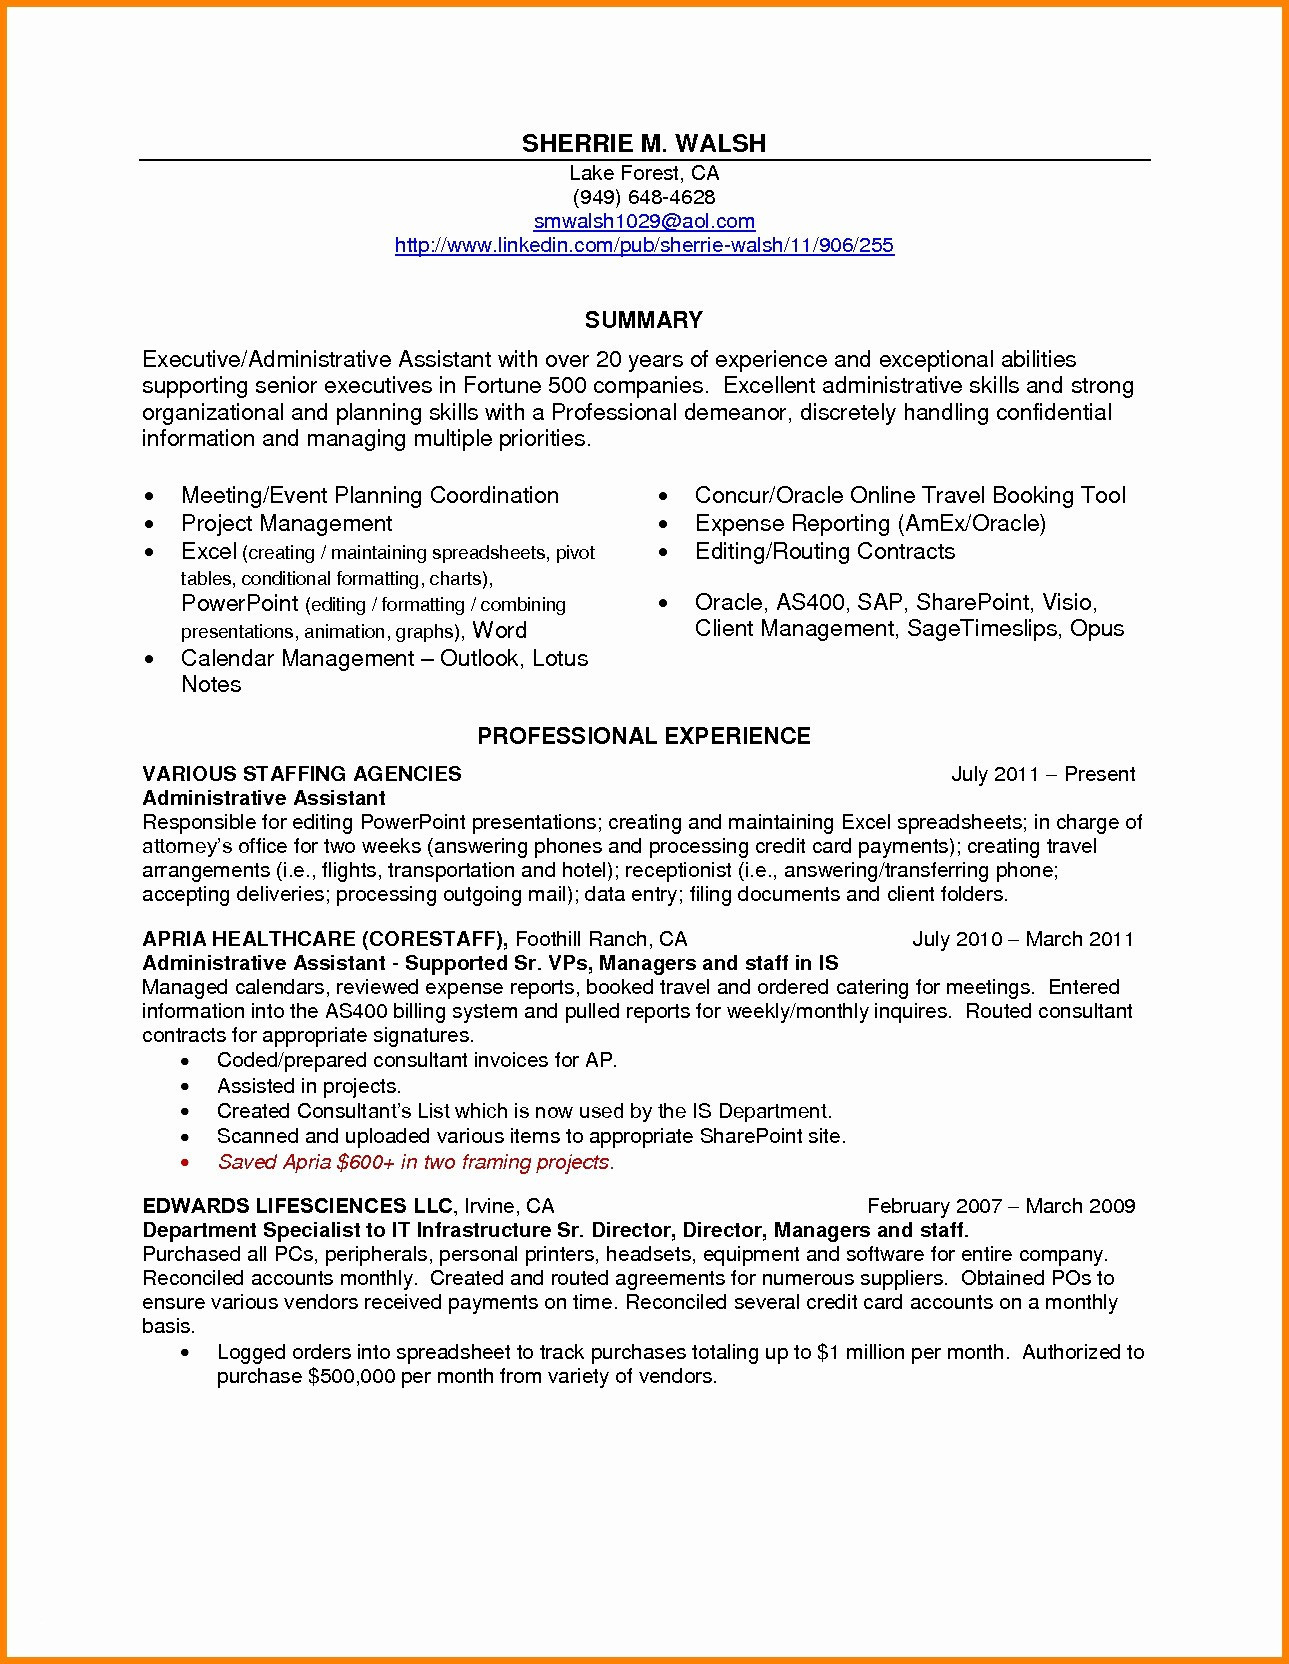 Answering Phones Resume - Awesome Table Examples Best Resume Professional Summary Examples